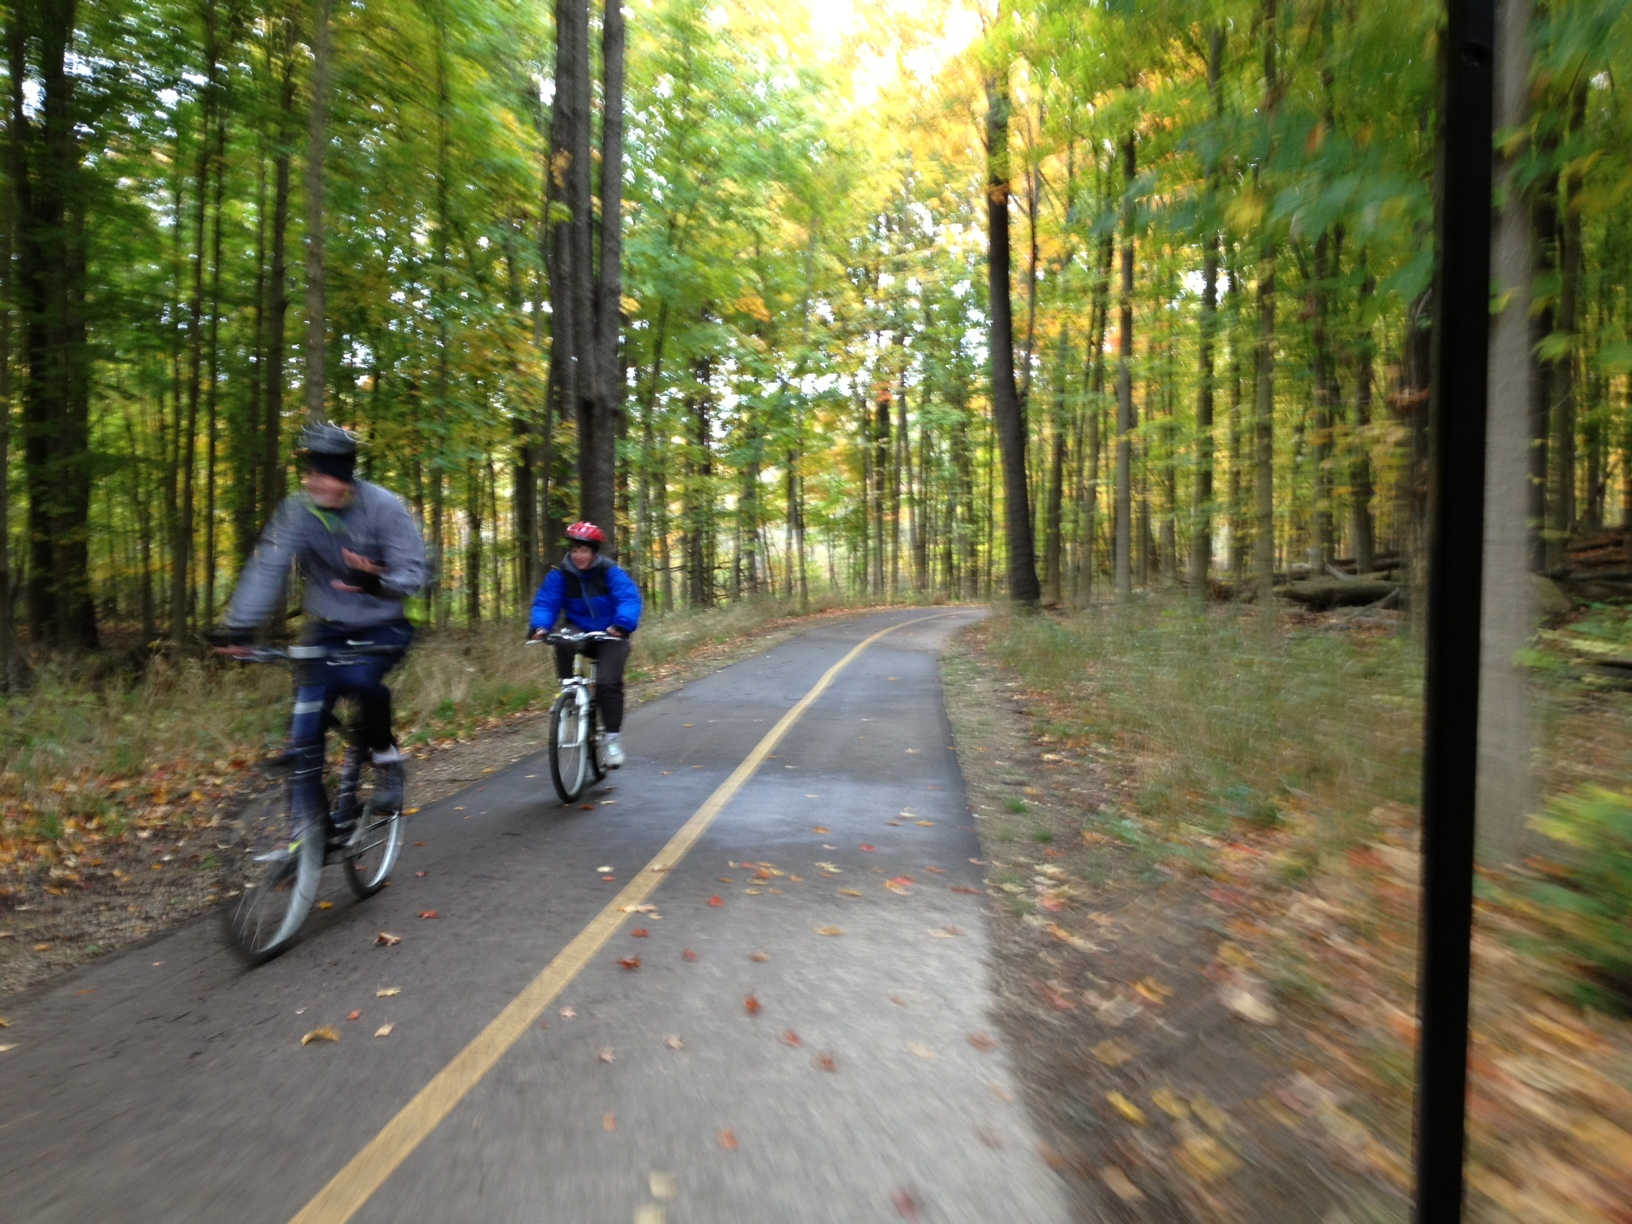 275-mile trail linking Lake Michigan, Lake Huron will open with inaugural ride